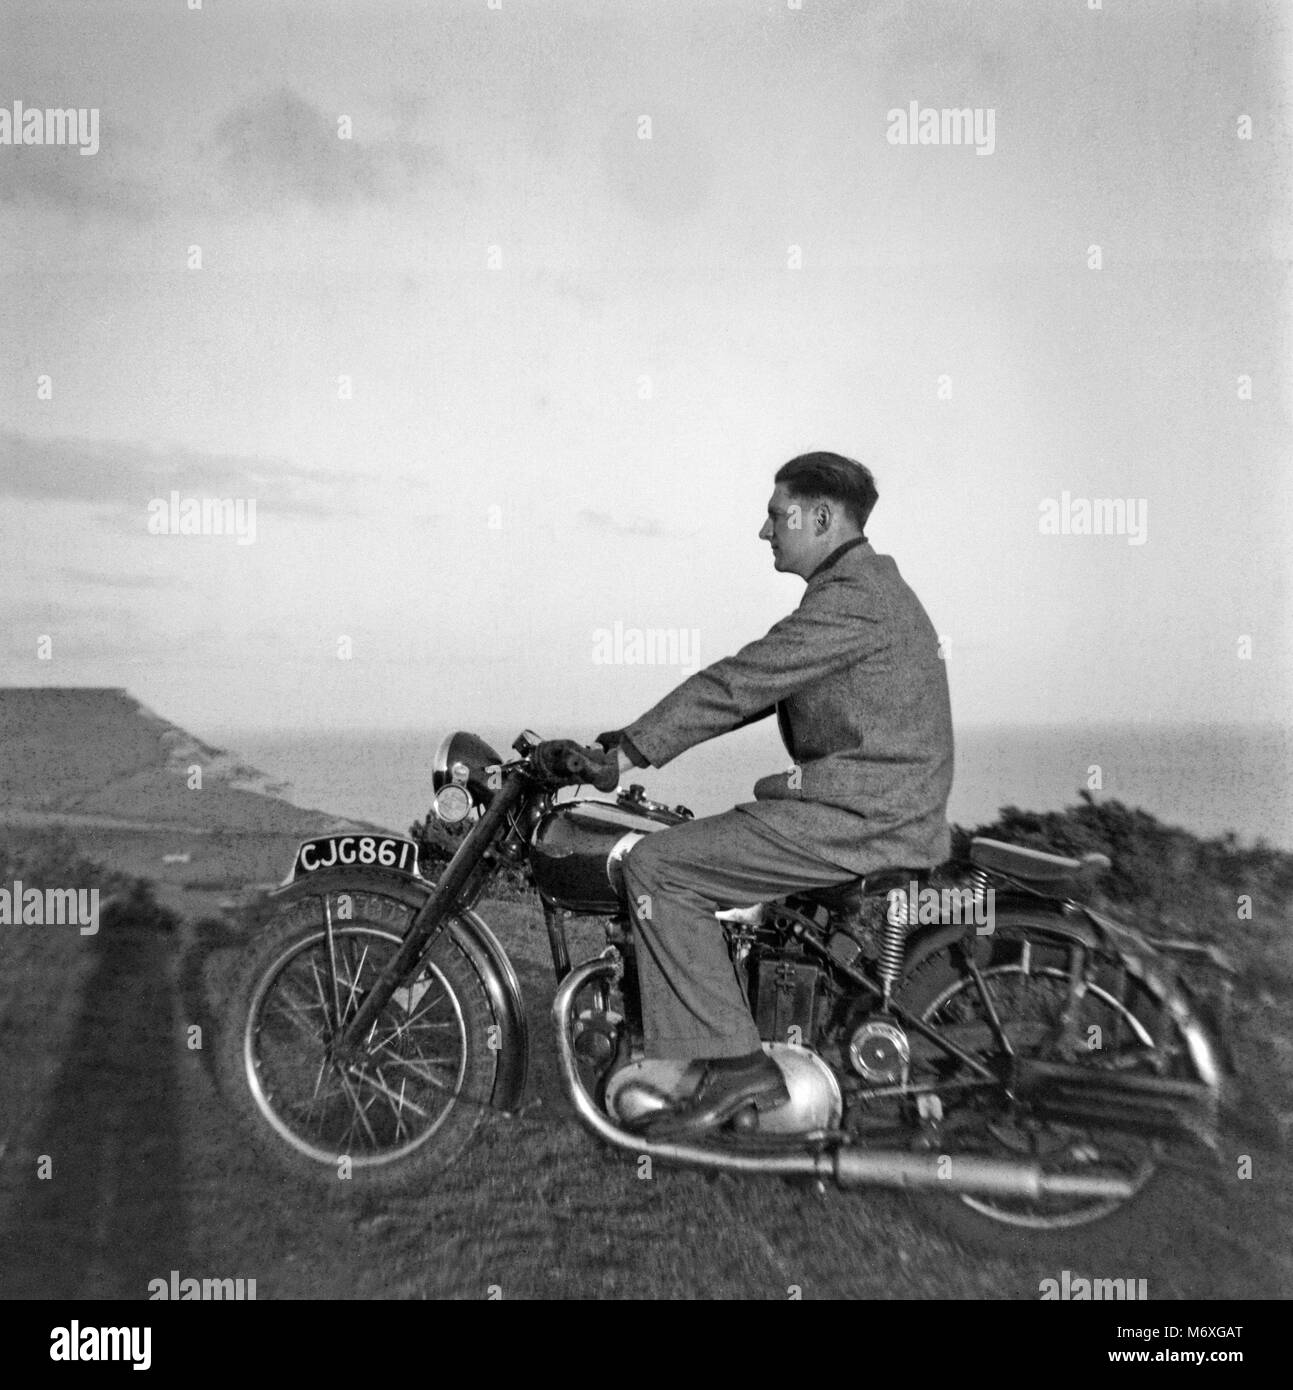 Vintage photo of a man riding a Triumph Motorcycle in England during the 1930s. - Stock Image